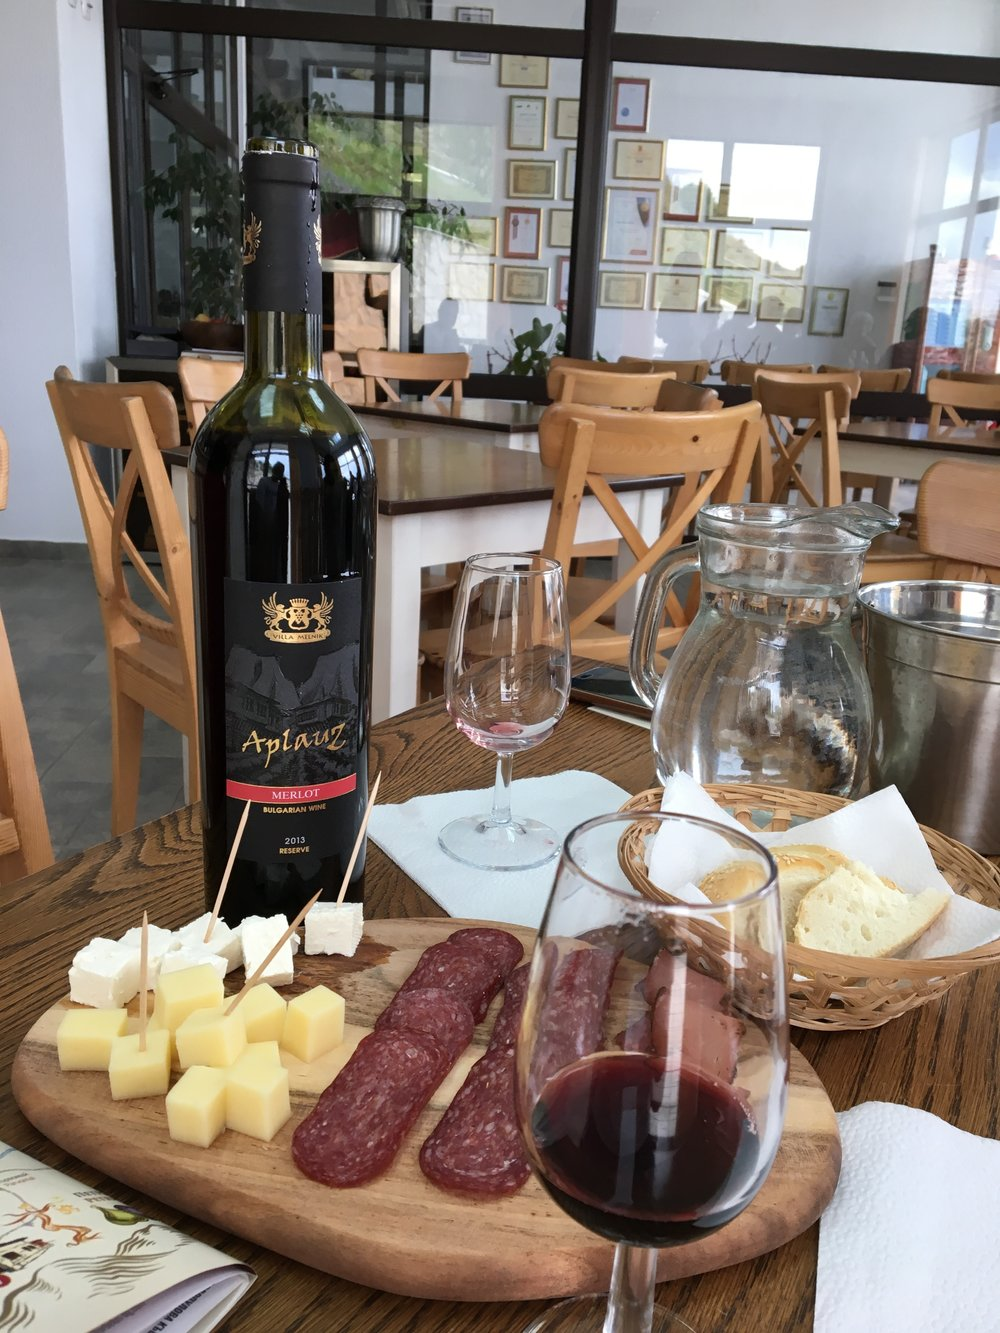 One of Villa Melnik's premium wines,the Applauz merlot, is made from carefully double hand-selected grapes and aged 15 months in Bulgarian oak barrels. It was commended at the Decanter World Wine Awards 2015 in London